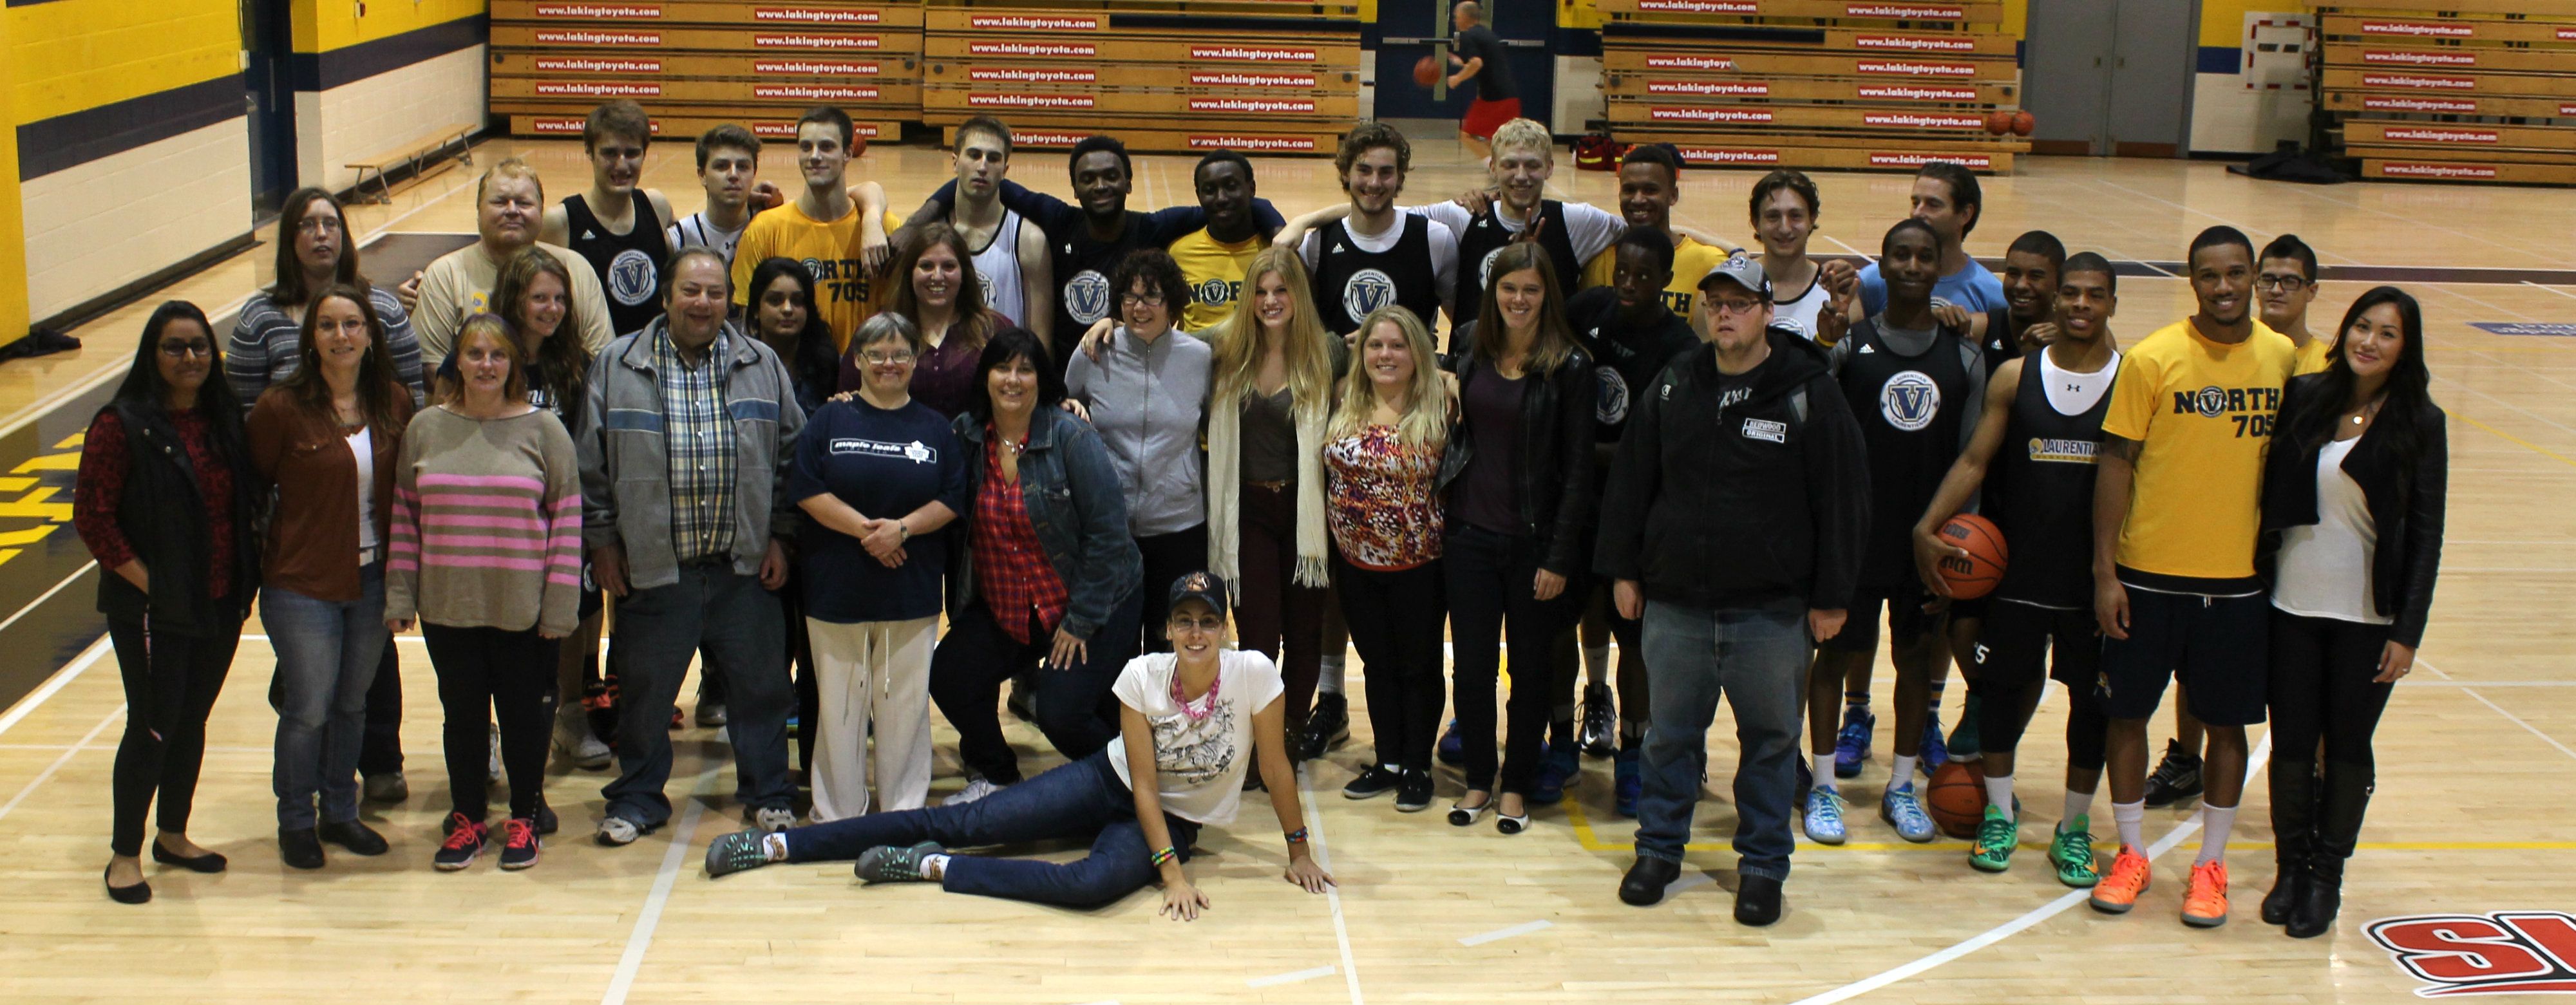 The LU Basketball team and the buddies. Photo by Oliver Wilmot.